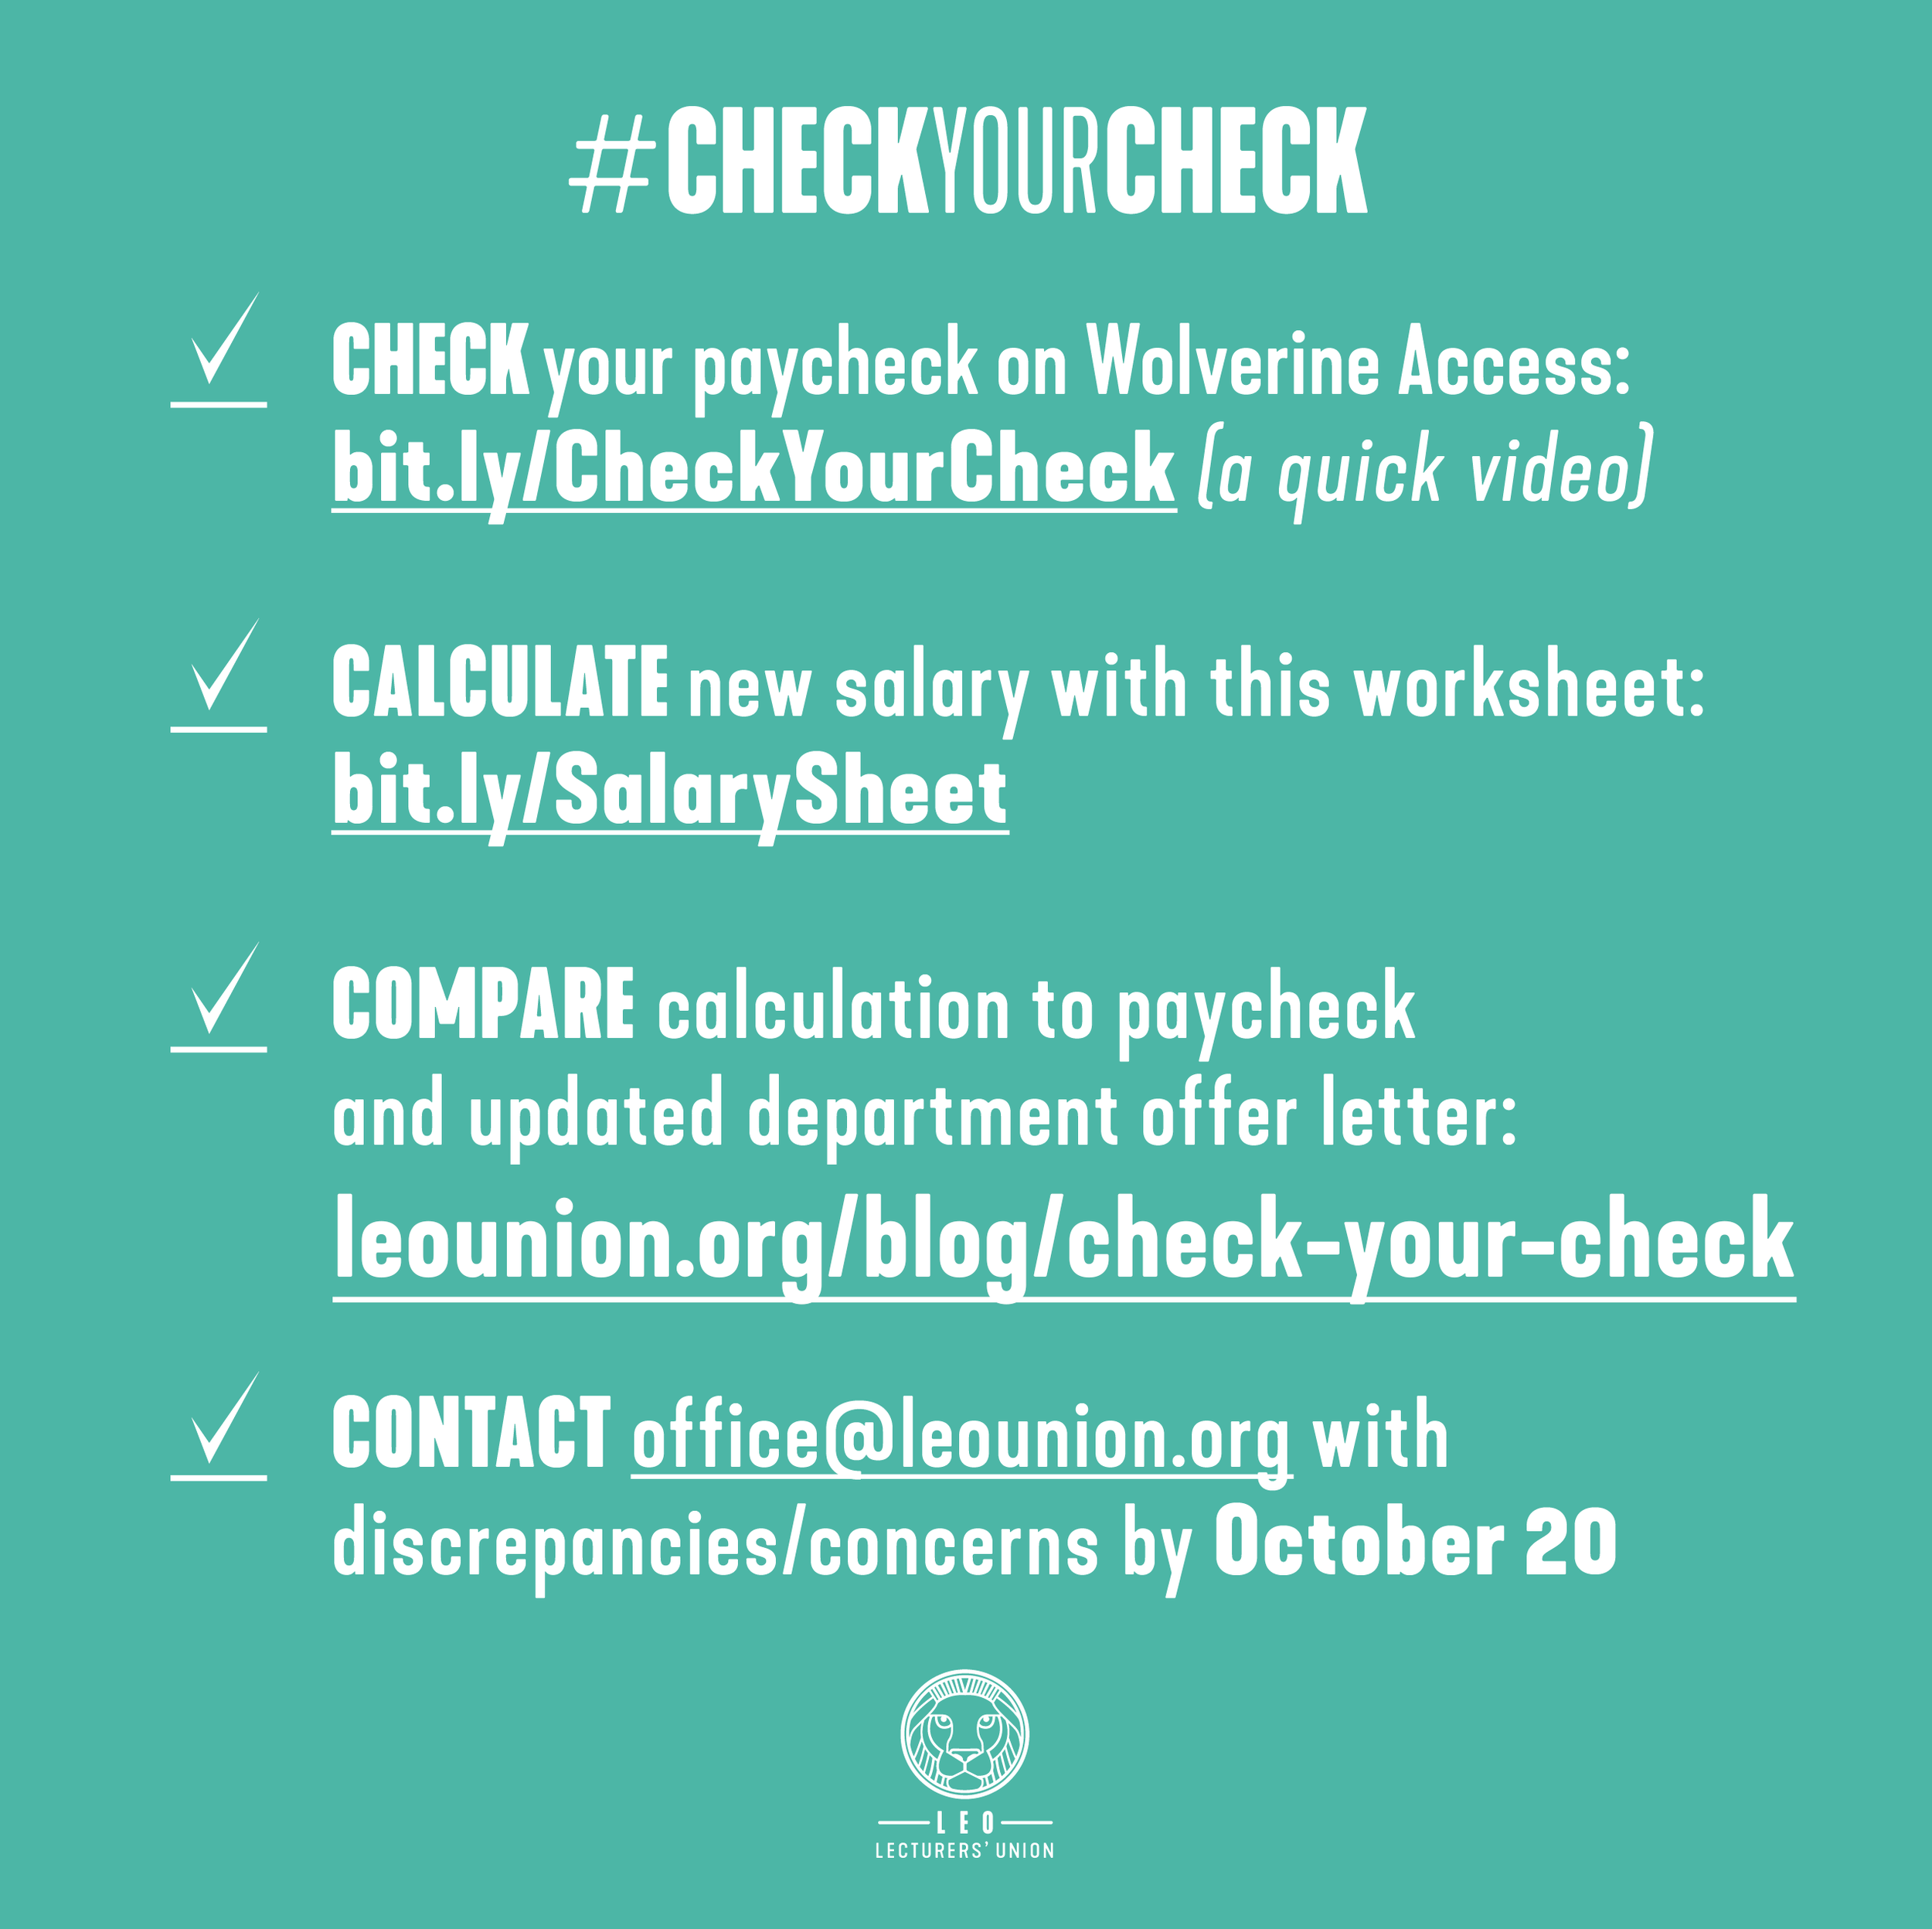 CHECKYOURCHECK 3.png